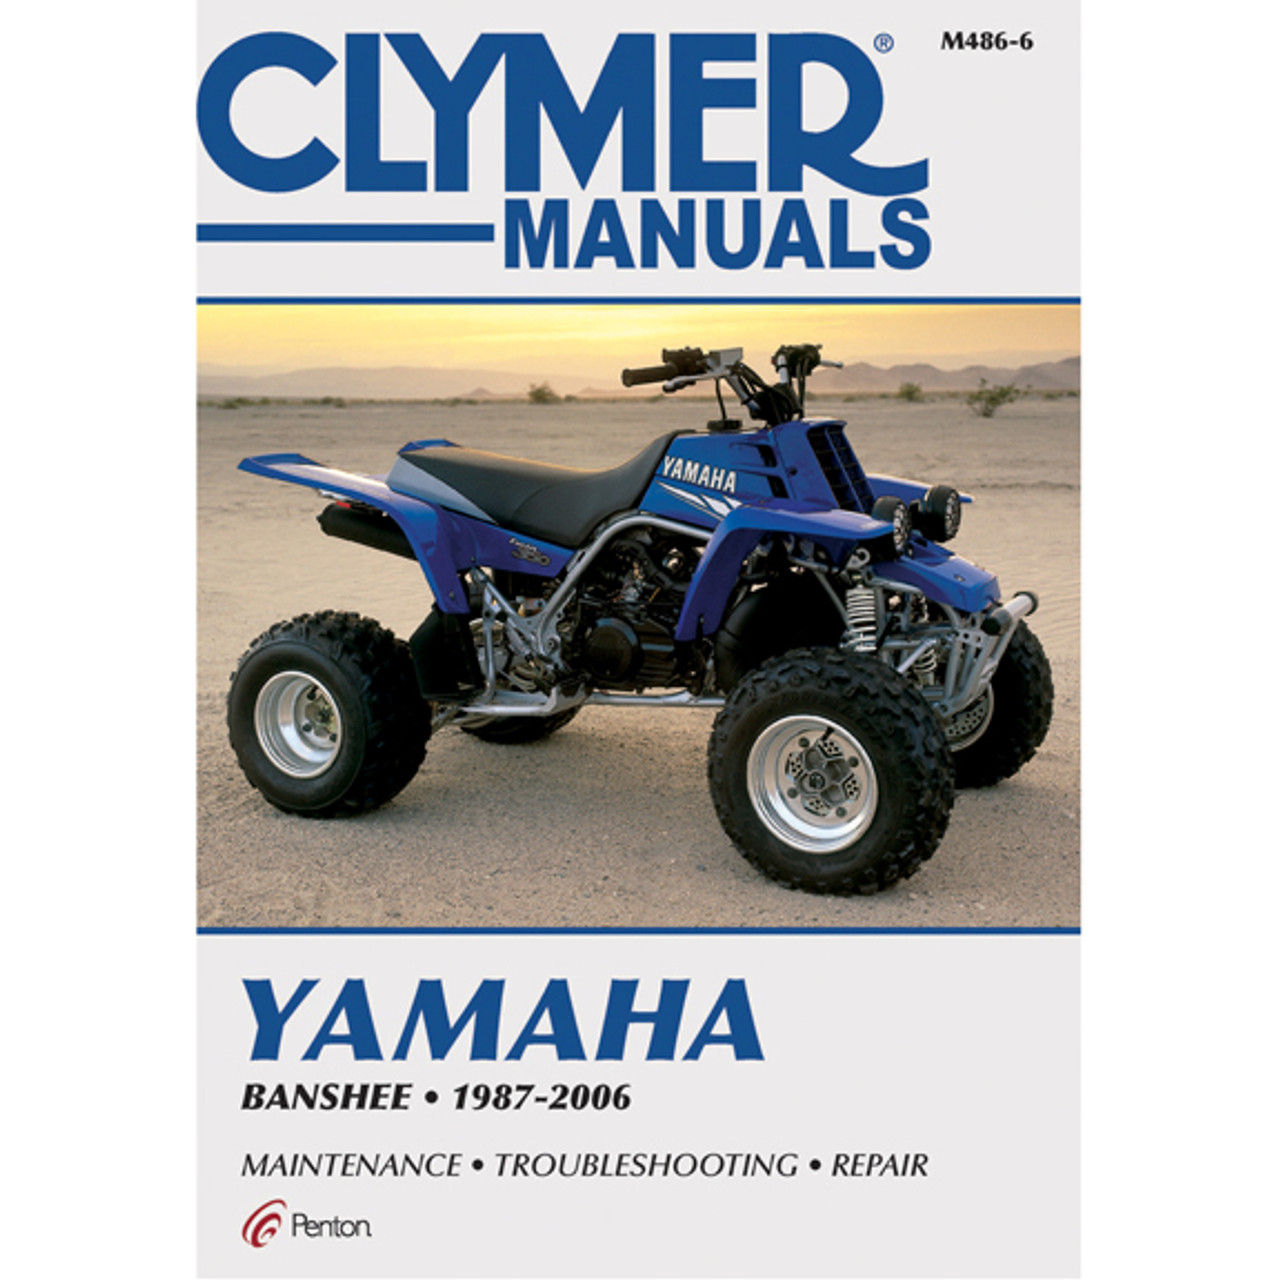 CLYMER Repair Manual for Yamaha Raptor 700R 2006-2009